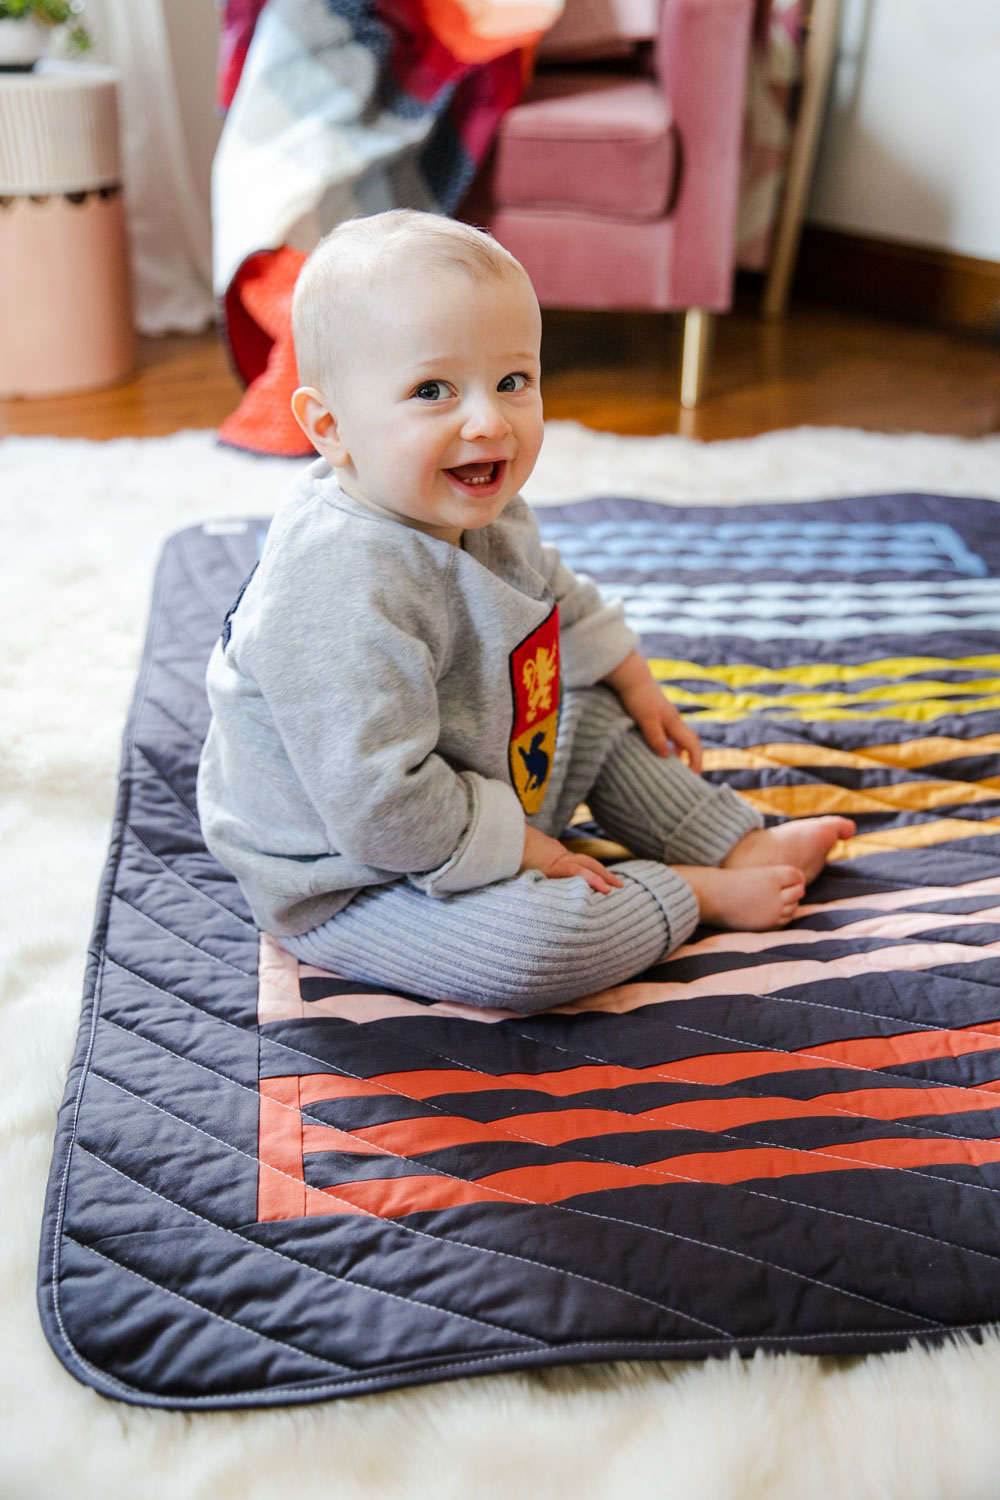 A small textiles company, based in Duluth, GA, makes rainbow baby quilts for a cause. Meesh Quilts is passionate about helping mothers and babies. suzyquilts.com #babyquilt